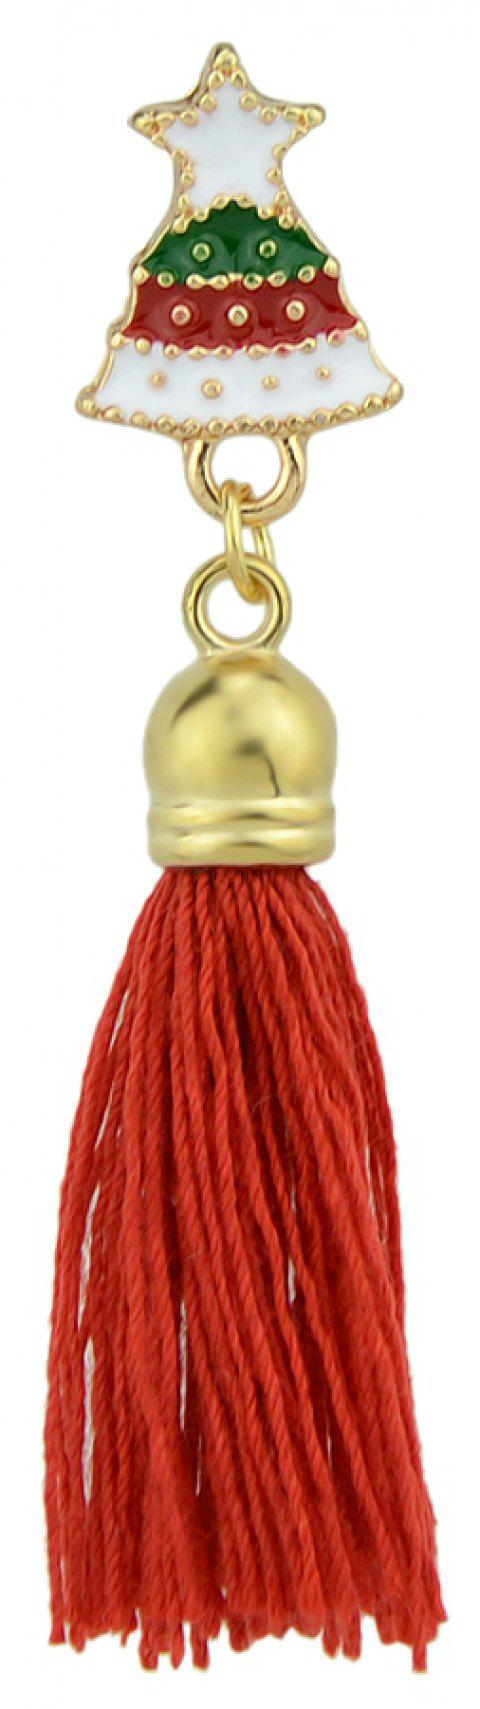 Enamel with Tassel Small Bell Brooches for Women - multicolor